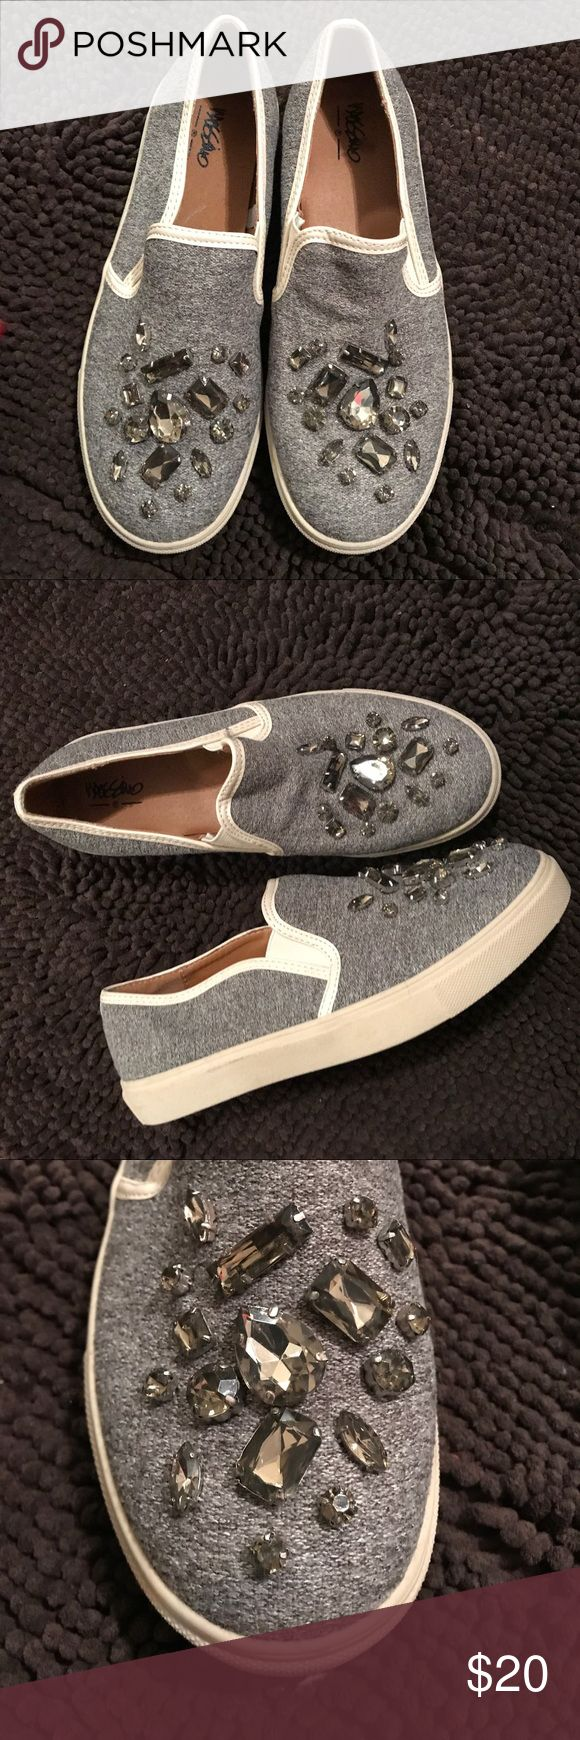 Jeweled Slip on sneaker Barely worn Gray slip on sneakers with jewel details. Perfect for looking effortless chic style on the go Missoni for Target Shoes Sneakers